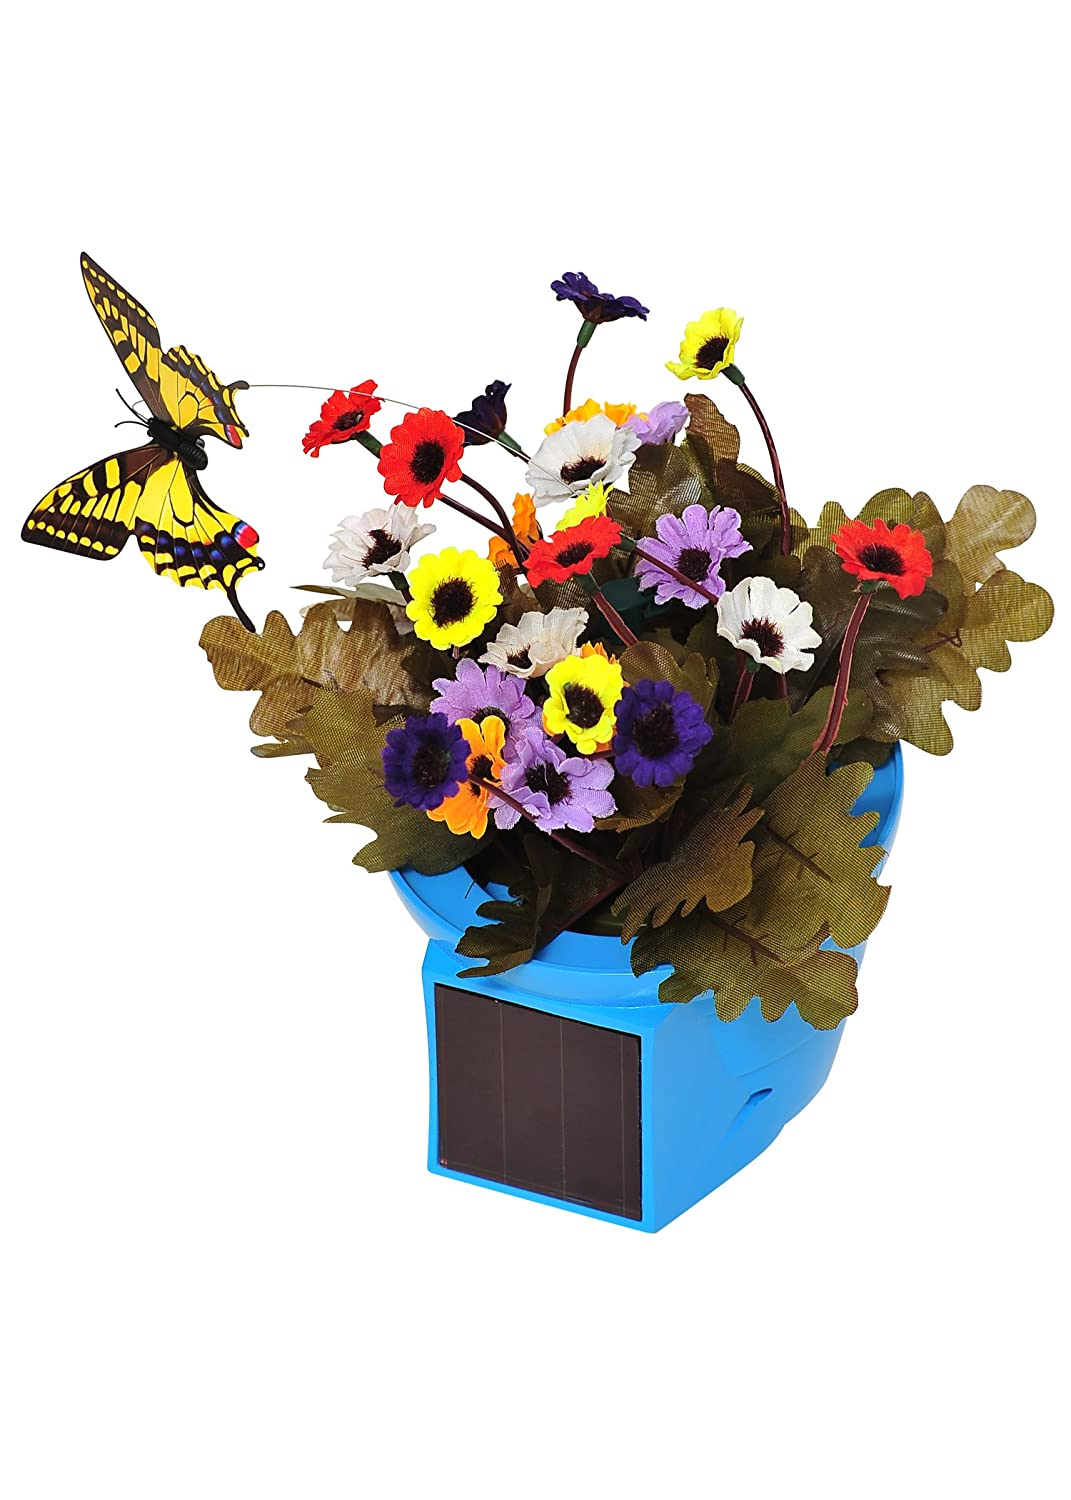 30%OFF Russco Lll GD124050 Solar Pals Blue Pot With Fluttering Red Butterfly  Patio Centerpiece